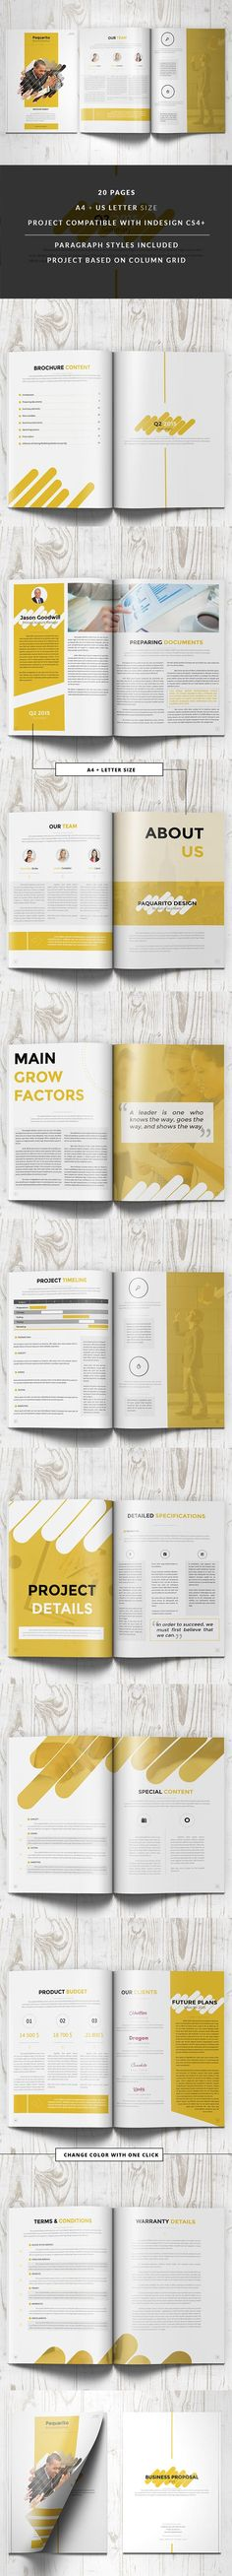 proposal report template%0A Design Project Proposal Template   Proposal templates  Project proposal and  Proposals